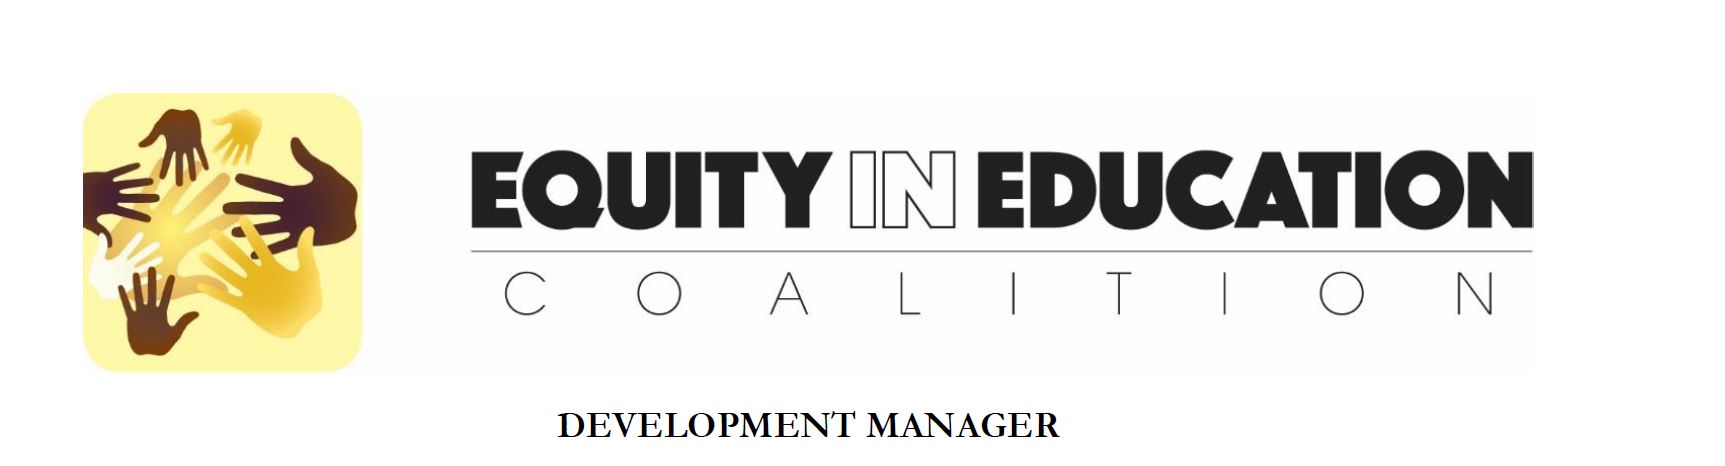 LEARN MORE:  http://eec-wa.org/wp-content/uploads/2015/12/Development-Manager_2016.pdf      The mission of the Equity in Education Coalition (EEC) is to advance equity in education, foster civic engagement, and advocate for students and communities of color, native American, refugee and immigrant. Founded in 2012, the Equity In Education Coalition is Washington State's largest coalition of stakeholders from communities of color and white allies who are striving to improve educational opportunities and outcomes for children of color.   Our Work Culture:  We are highly dedicated to the important work of equity and racial justice, and strive to foster a caring, supportive and flexible work environment. We will be growing to five team members by the end of the summer.  We are seeking someone who excels in the world of development and fundraising, but will also excel in an organization whose culture embraces race-conscious conversations.   Future Development Manager    Over the past four years, EEC has had tremendous success raising funds through grants and foundation support. To advance EEC's current strategic plan, however, we plan to add additional focus to individual donor and major gift cultivation. The new Development Manager will build, strengthen, and execute a robust engagement plan for prospecting, cultivating, and stewarding a wider range of foundations, as well as individual and major gift donors. The Development Manager will report to the Executive Director, and also work closely with the Board of Directors and other team members, including our Educational Projects Coordinator, Communications Coordinator and Community Outreach Coordinator.  This is a great opportunity for someone who wants not just a job, but an opportunity to empower communities of color and ensure an excellent education for the next generation children.  You will work closely with the Co-Founder and ED to grow the EEC. You will be challenged all the time, pushed to the limit, learn a ton of stuff, be on the cutting edge of equity and education work, have a lot of fun, be frustrated on occasion and inspired frequently, and make a huge difference.   Compensation and Benefits:    EEC is prepared to offer a competitive compensation package commensurate with candidate's experience. Salary range for this position is $44,000-$50,000 per year, with opportunity for advancement during annual review. This position is exempt.   TO APPLY : Submit a cover letter and resume (both combined into ONE Word or PDF document) to info@eec-wa.org by 5pm 6/17/2016. If you advance to the interview stage, you will be asked for two writing samples, including at least one grant proposal.